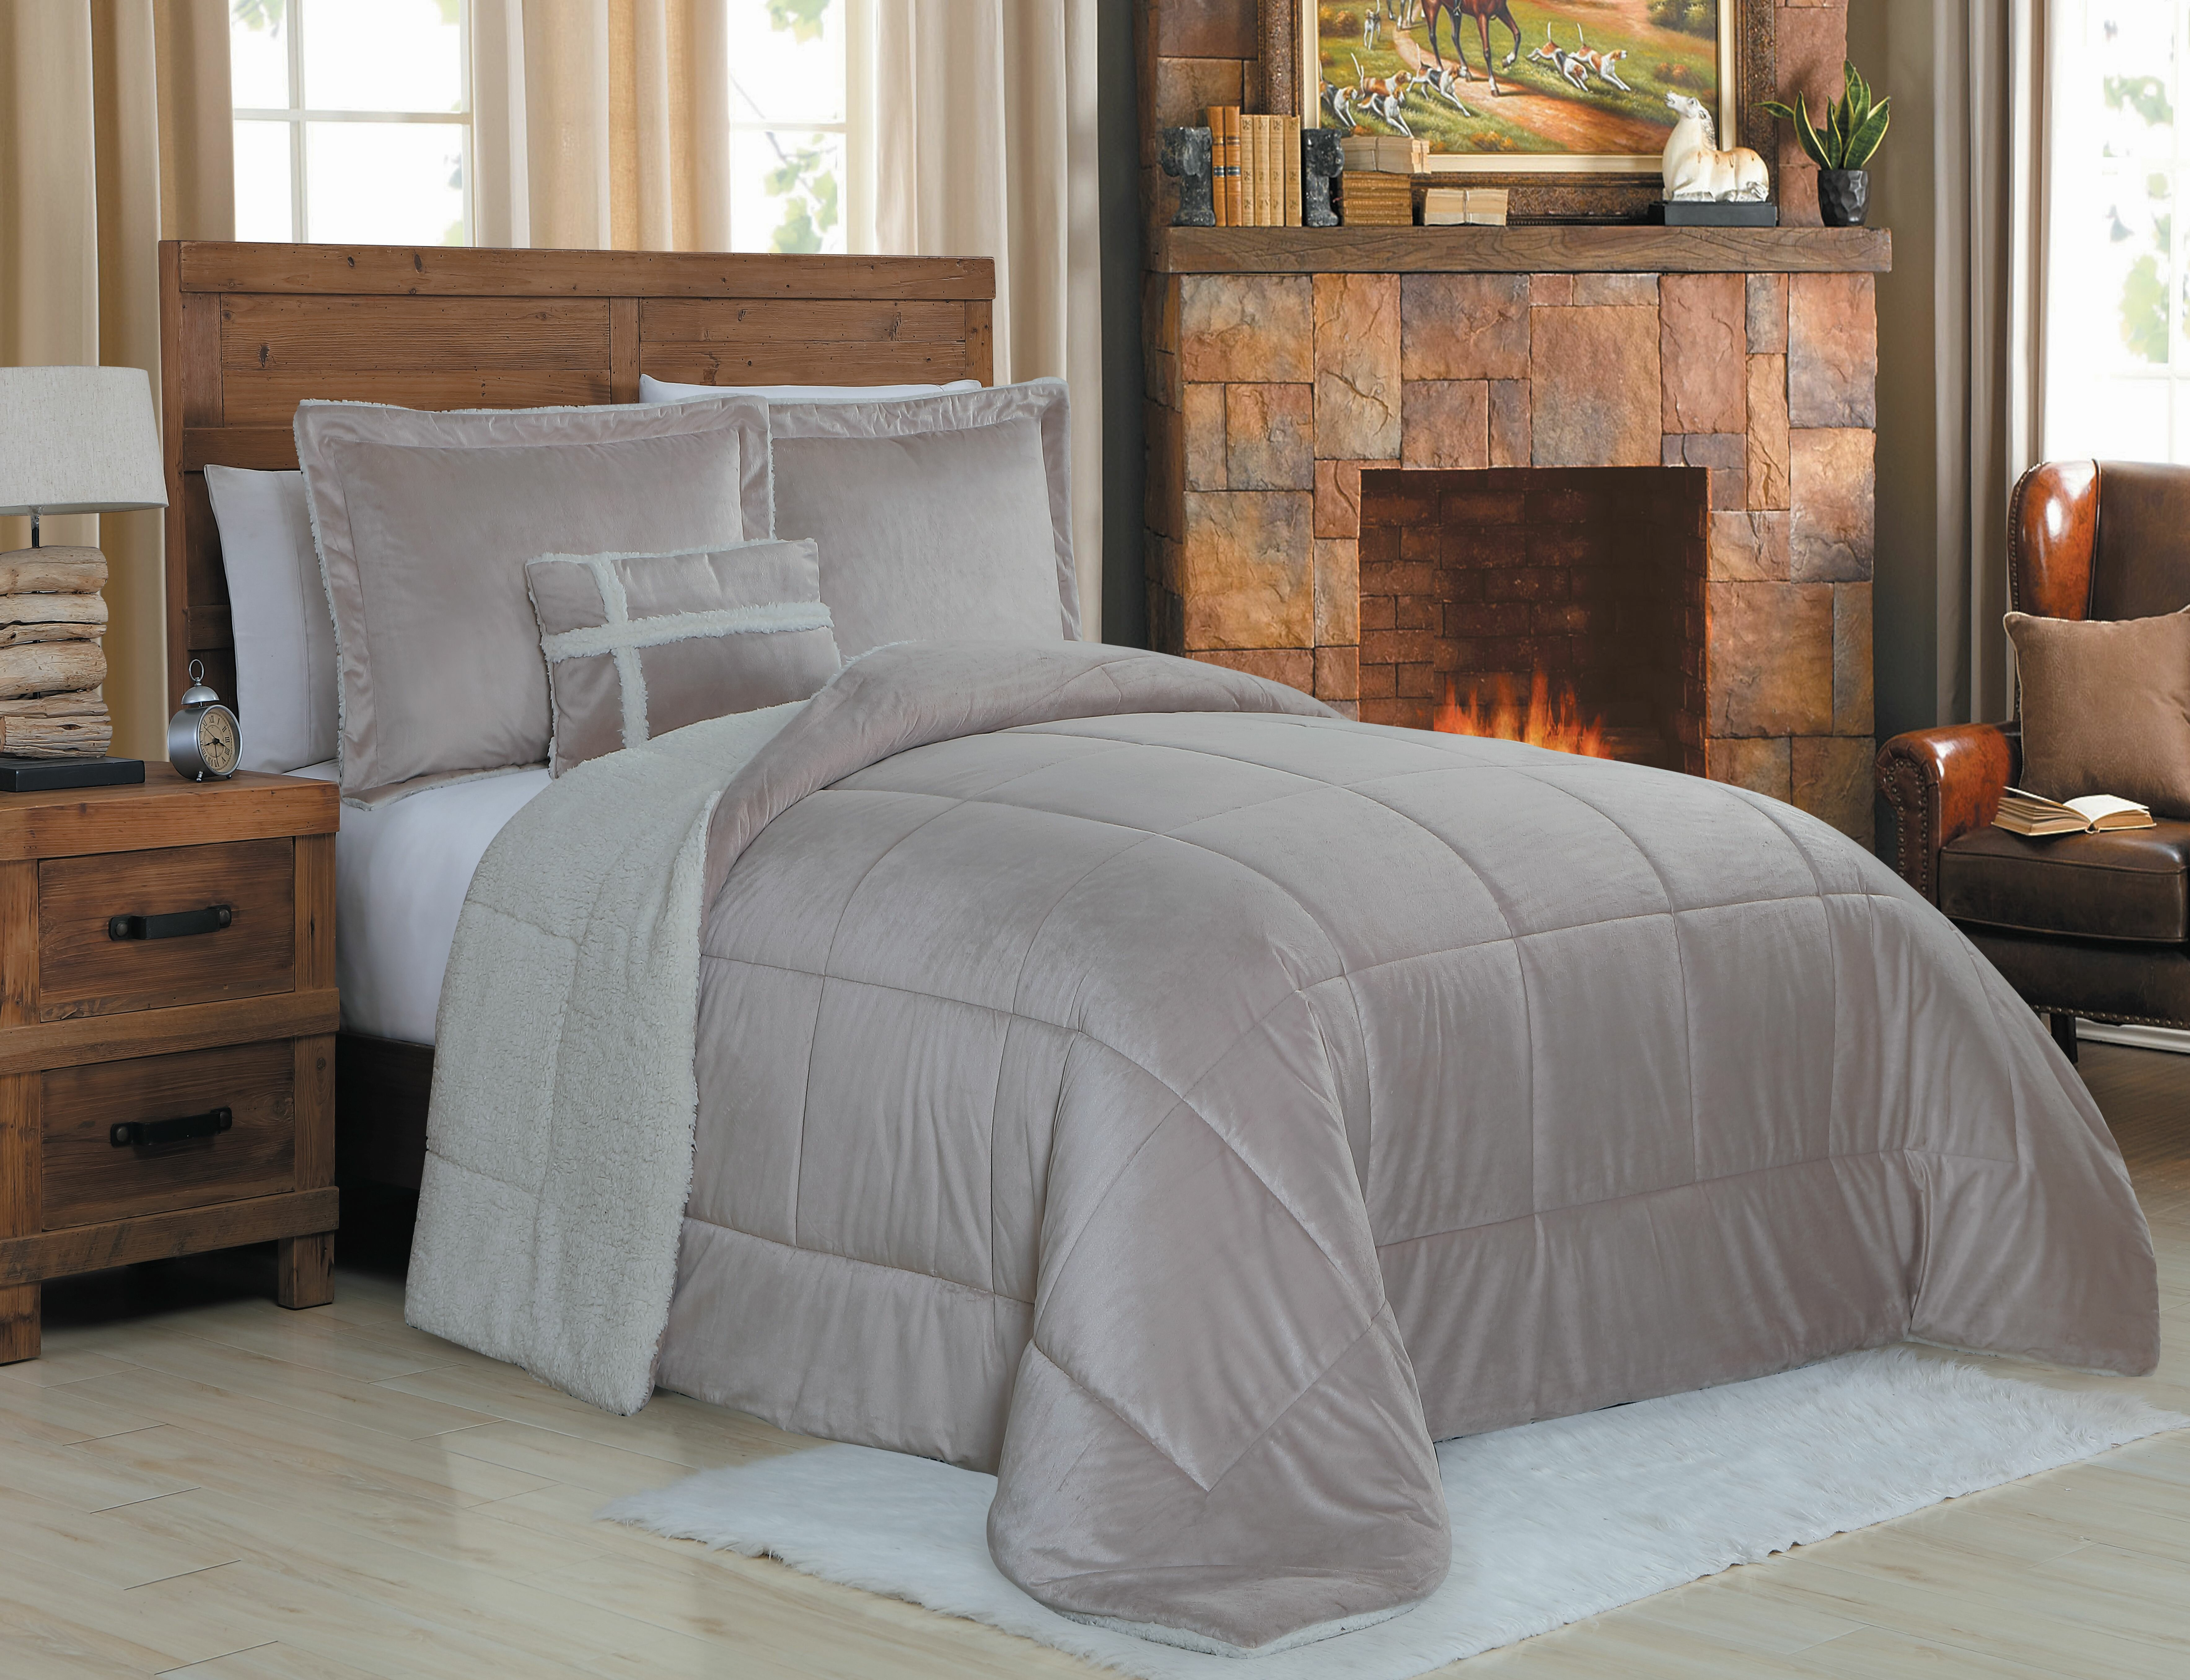 set queen ensembles comforters linens quilt clearance white colorful comforter size denim full dragon popular discount suede bedding of modern bed and sets waverly black king